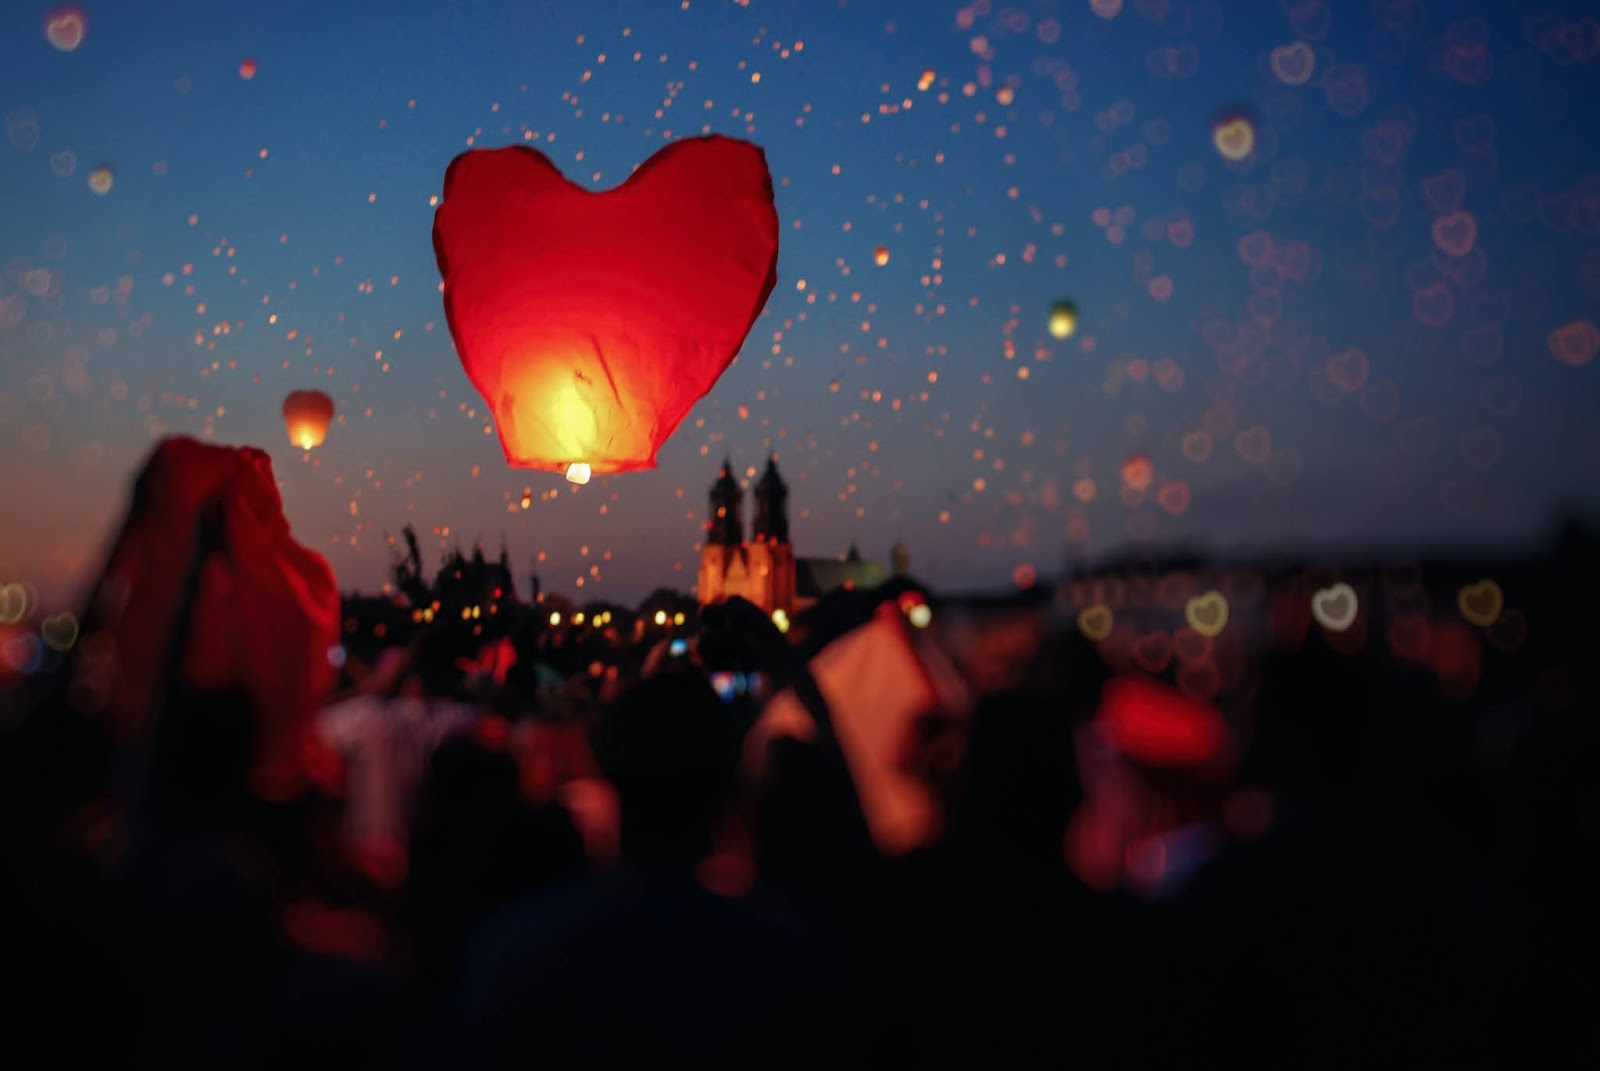 hot air ballon heart images shaped